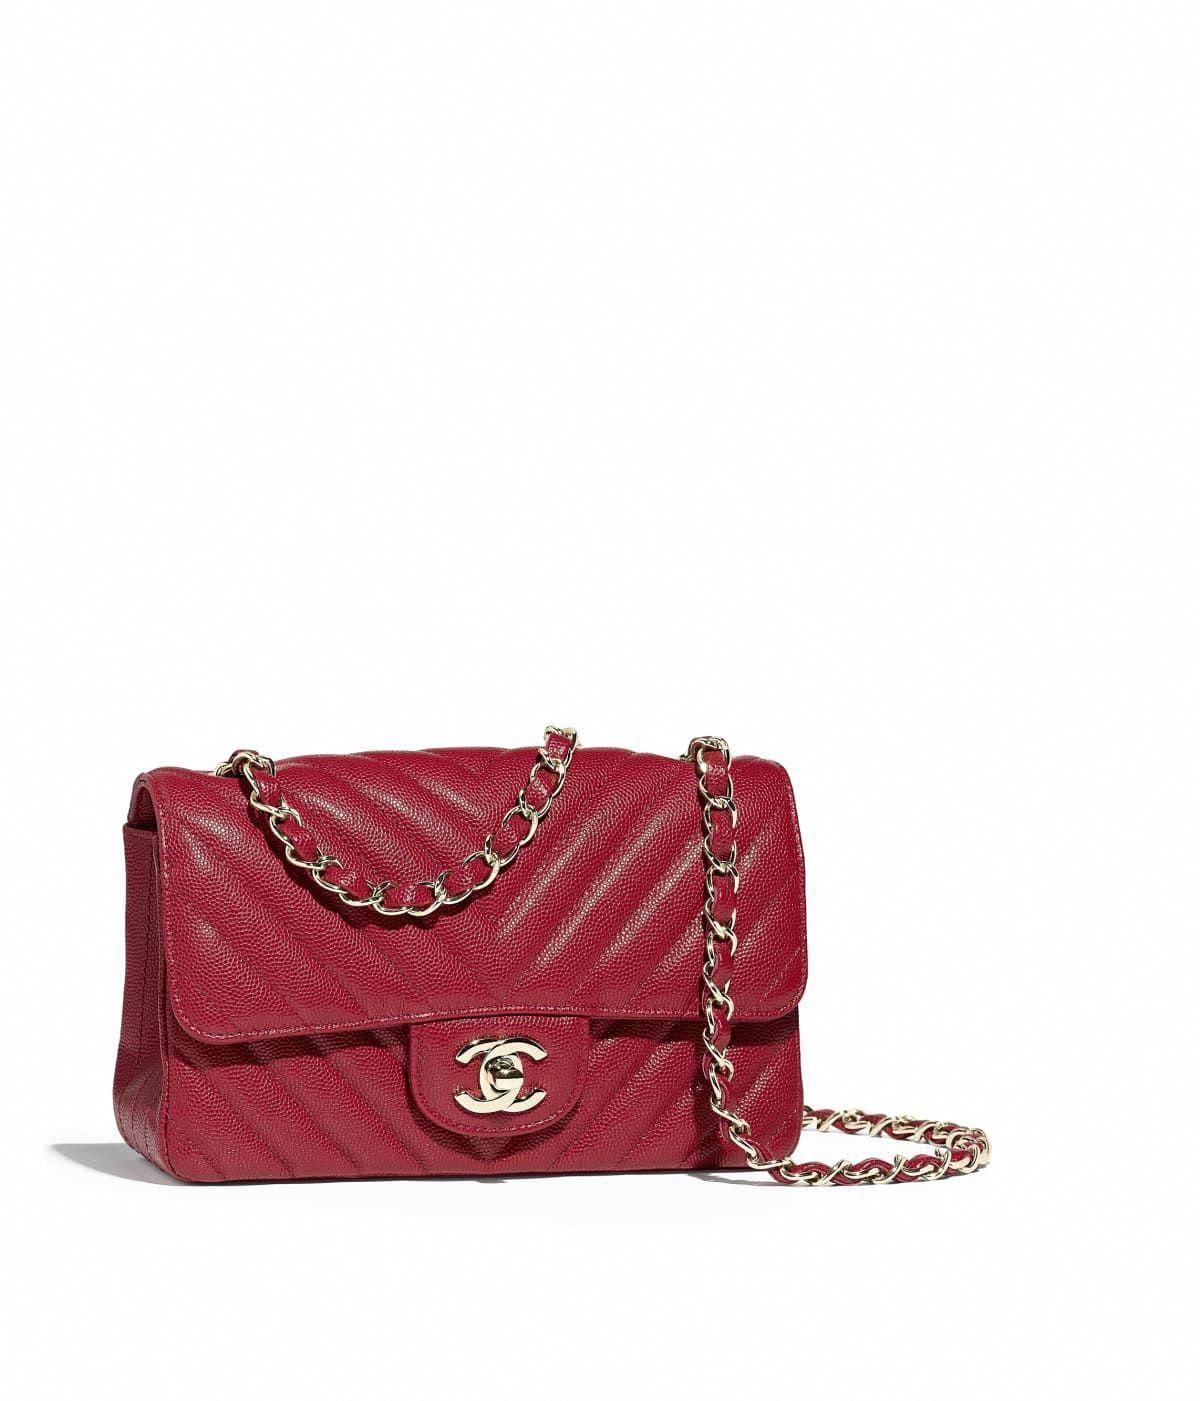 c42a24411cbe Handbags of the Fall-Winter 2018 19 Pre-collection CHANEL Fashion  collection   Mini Flap Bag